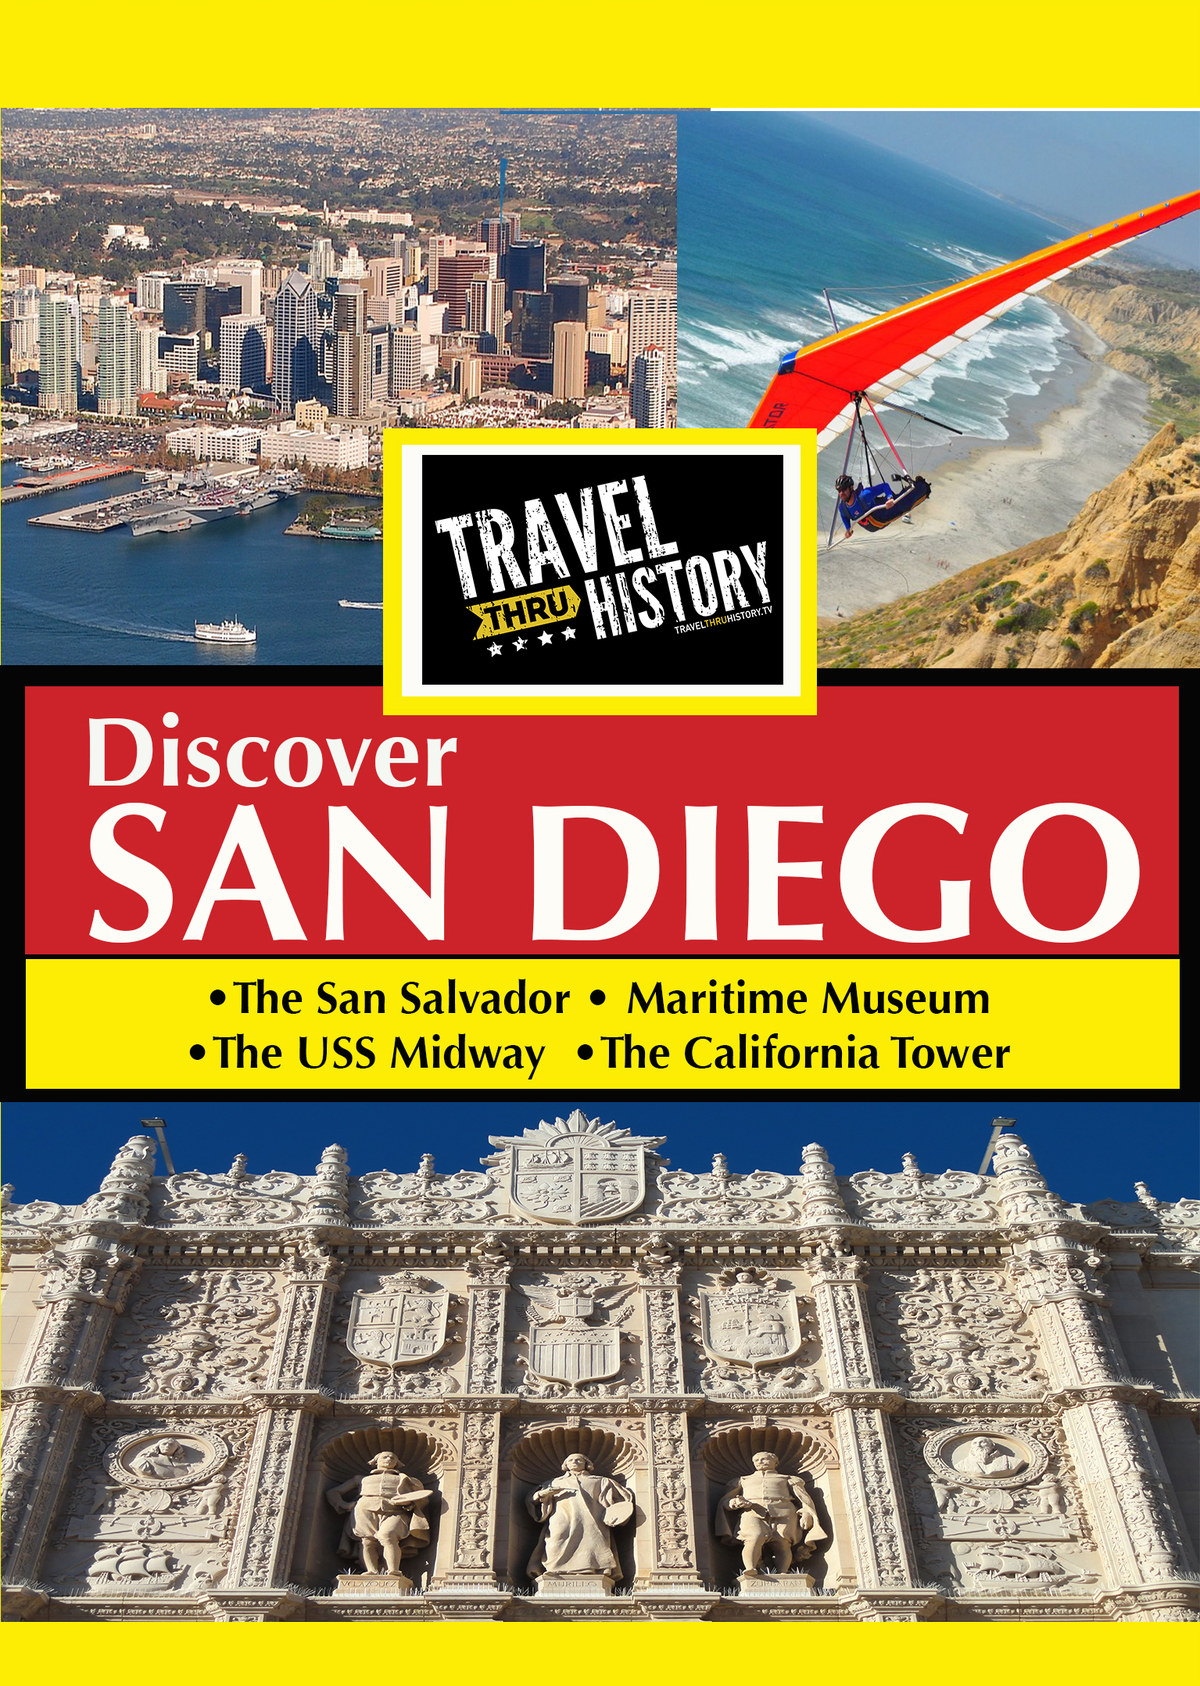 T8980 - Discover San Diego